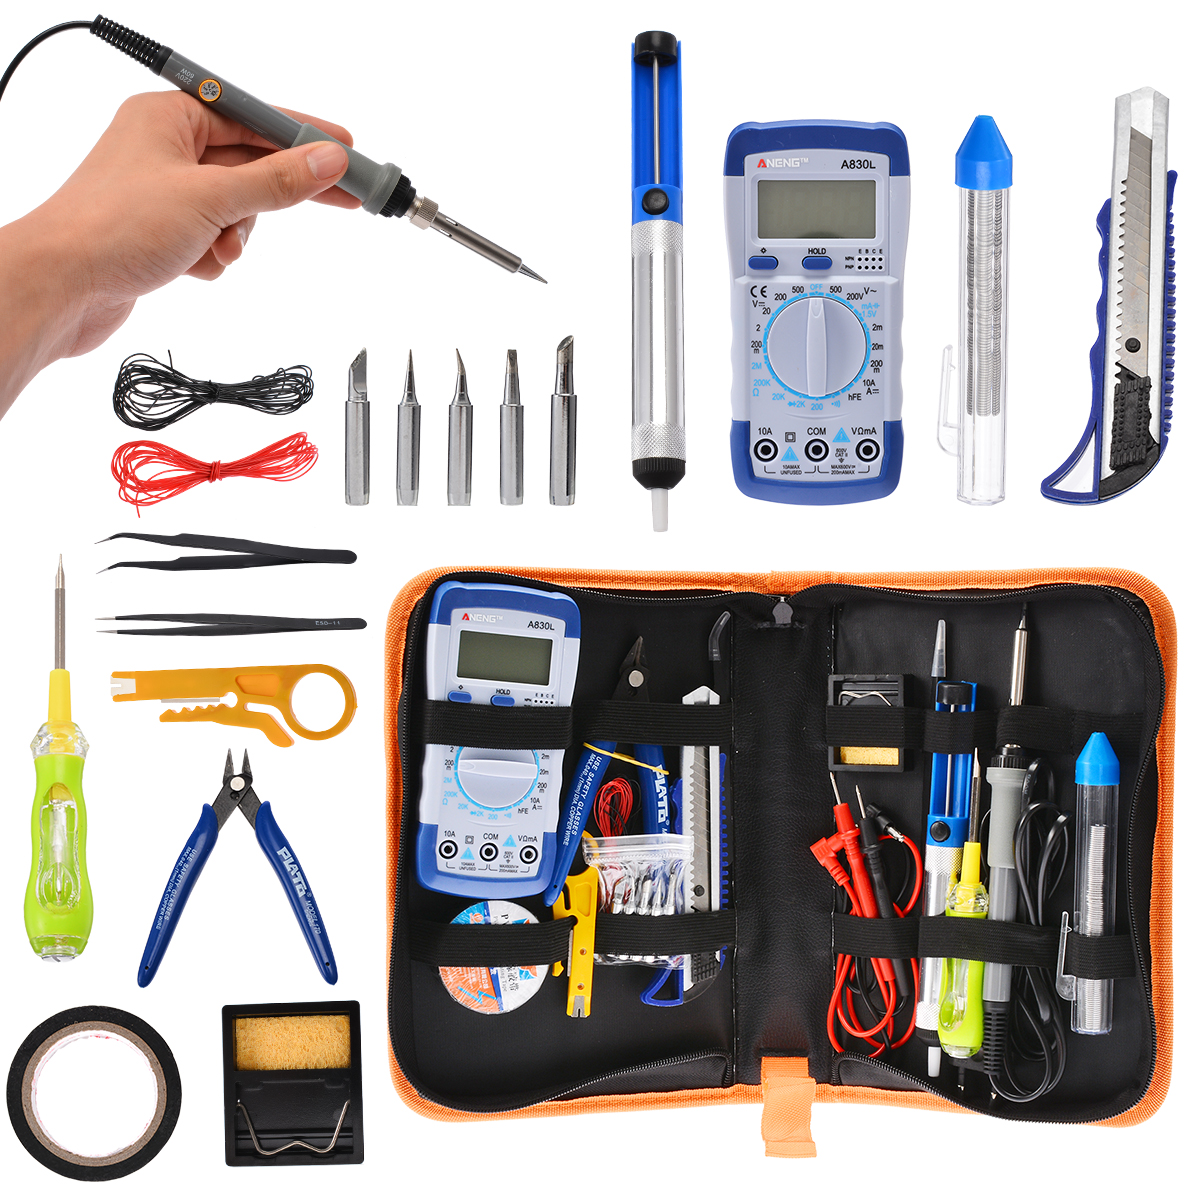 1set 20 in 1 110V 220V 60W Temperature Electronic Soldering Iron Kit Adjustable Temp Portable Welding Repair Tool Set